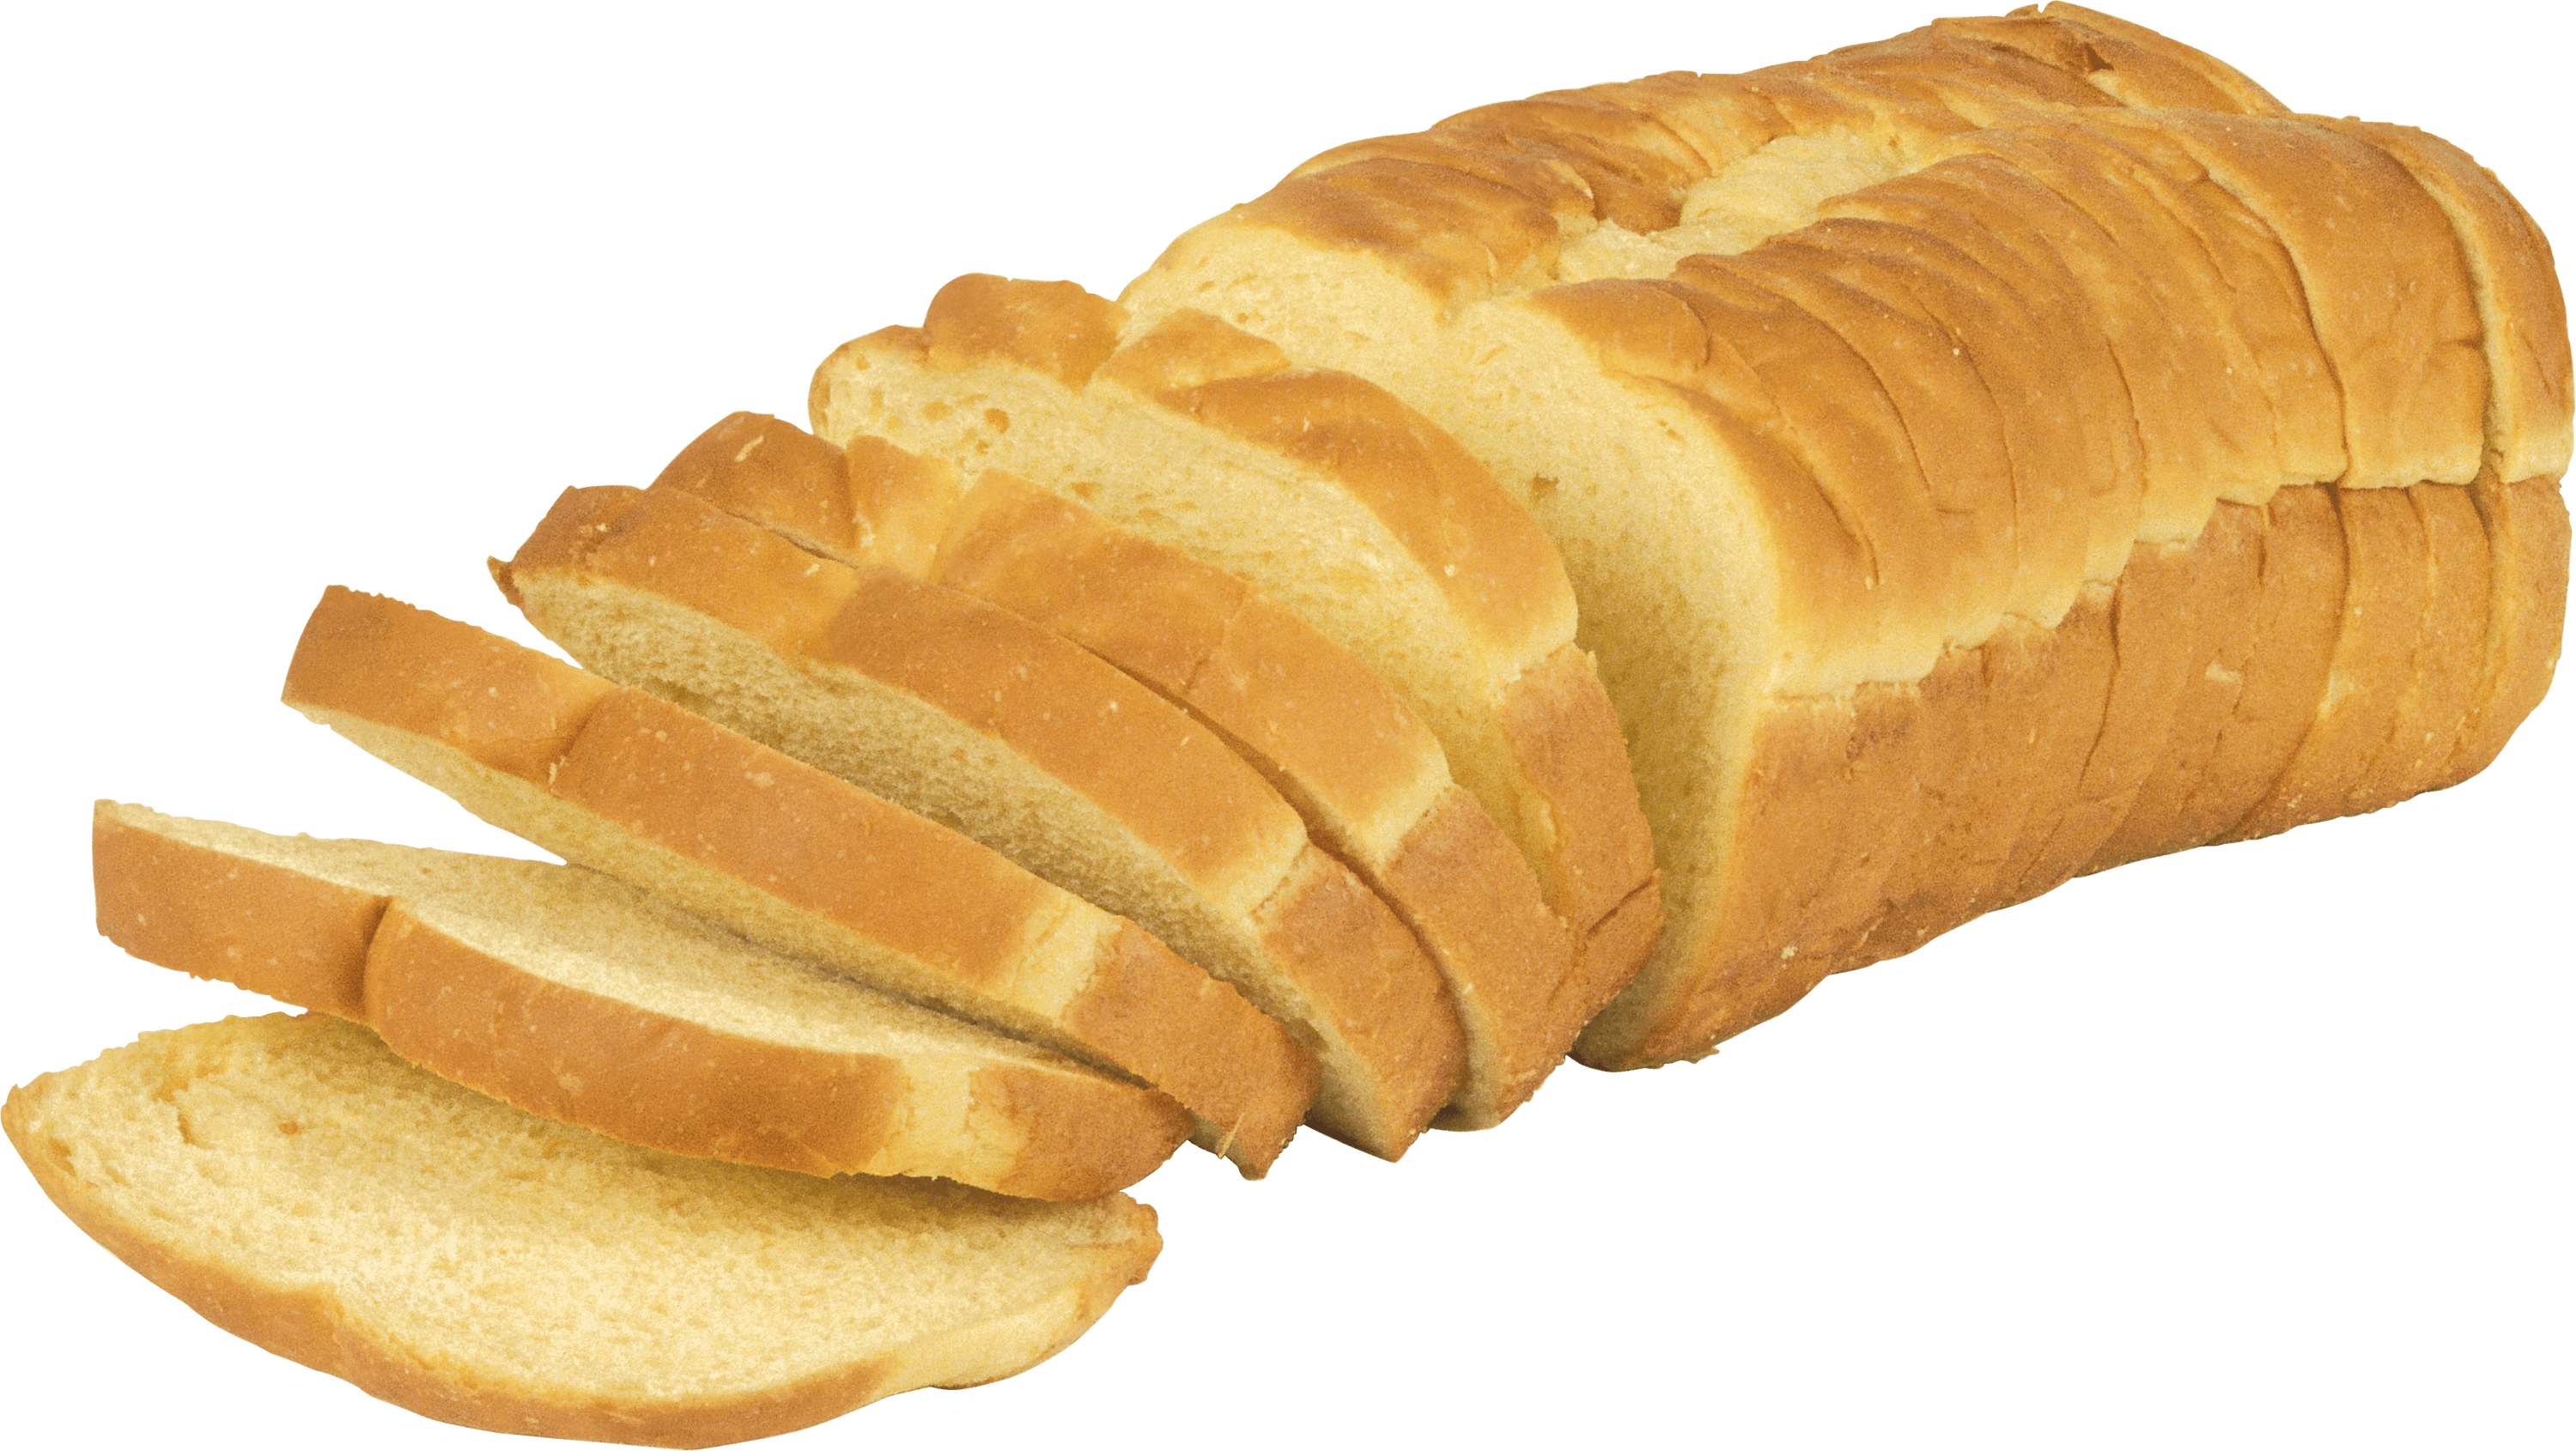 Bread Png - Sliced Bread